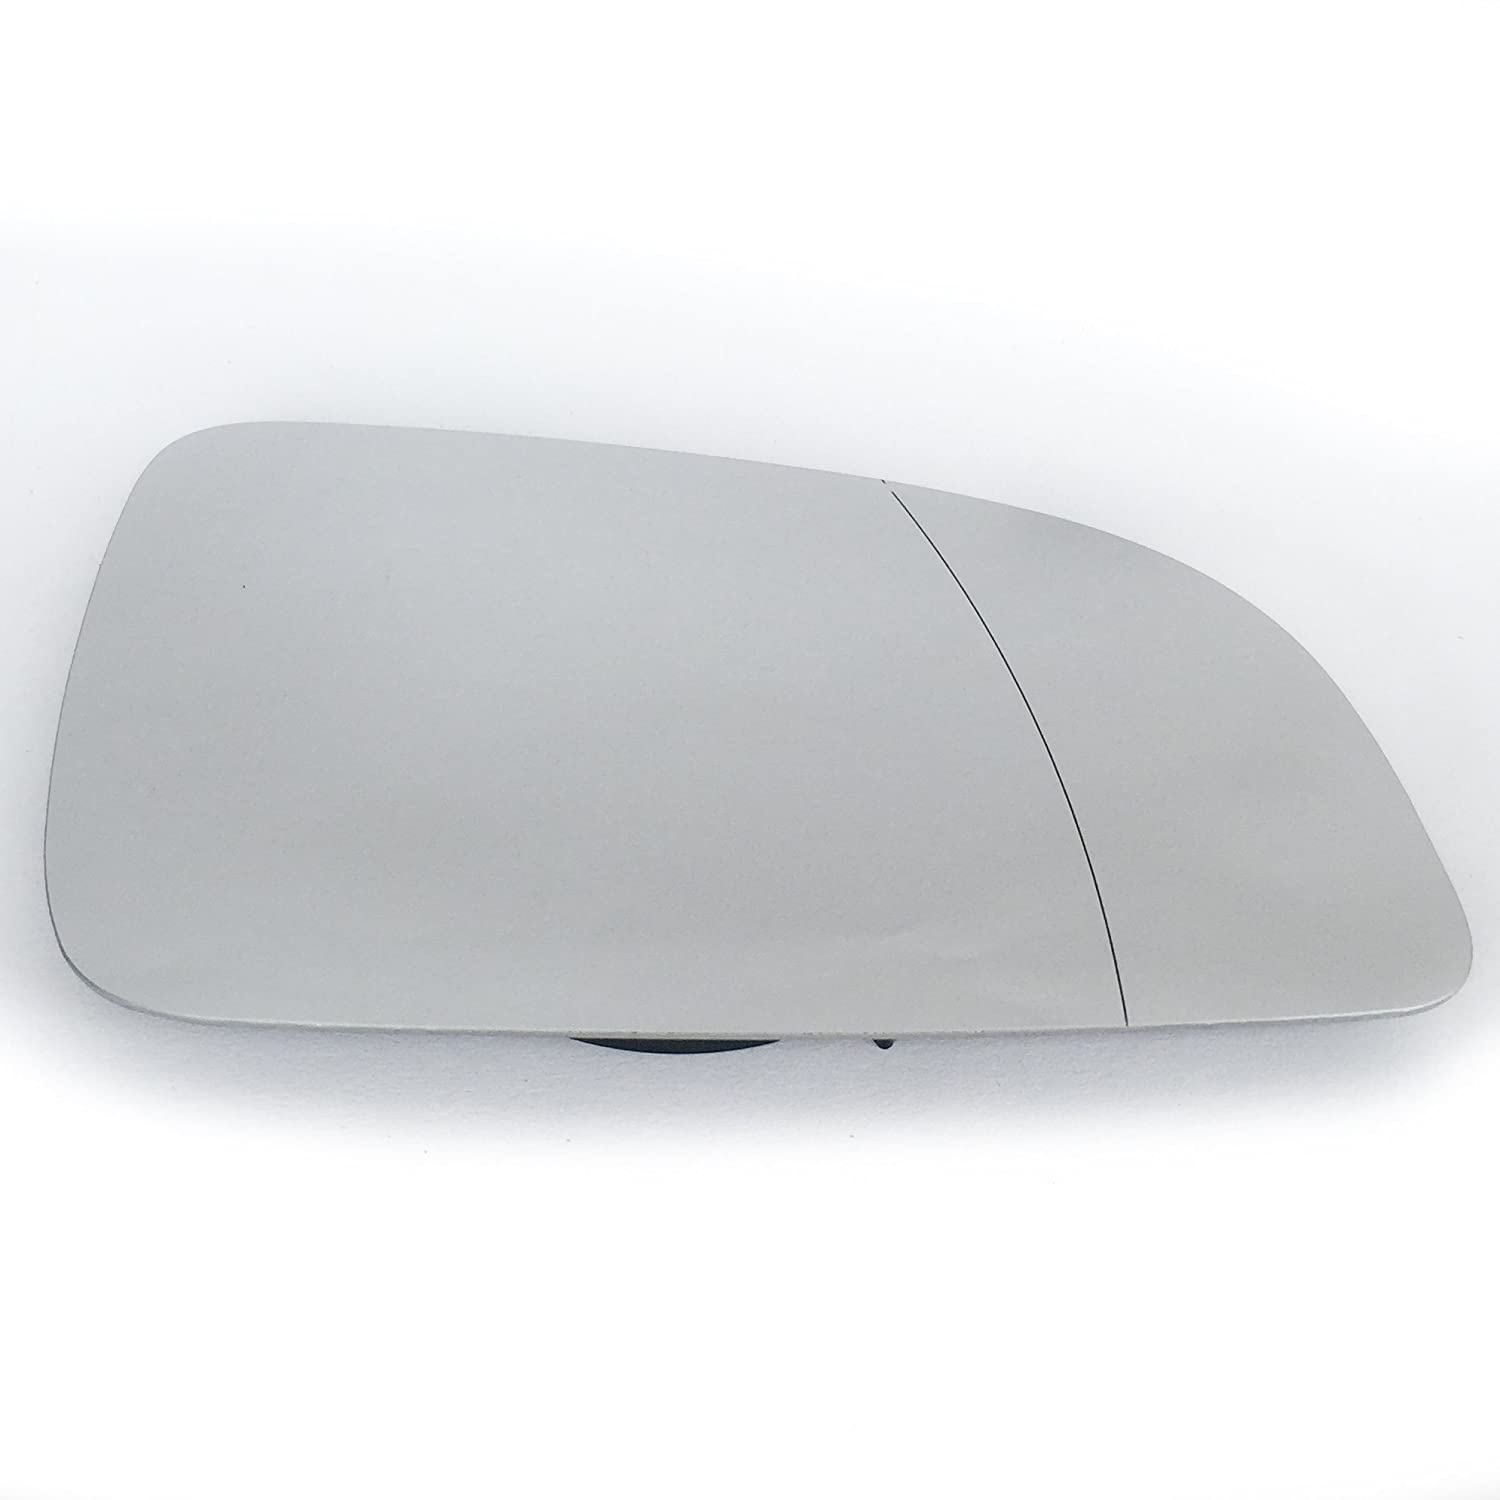 Sylgab VaAs/_0804/_RHt/_W1151 Right Side Wing Door Mirror Glass Heated with Plastic Holder